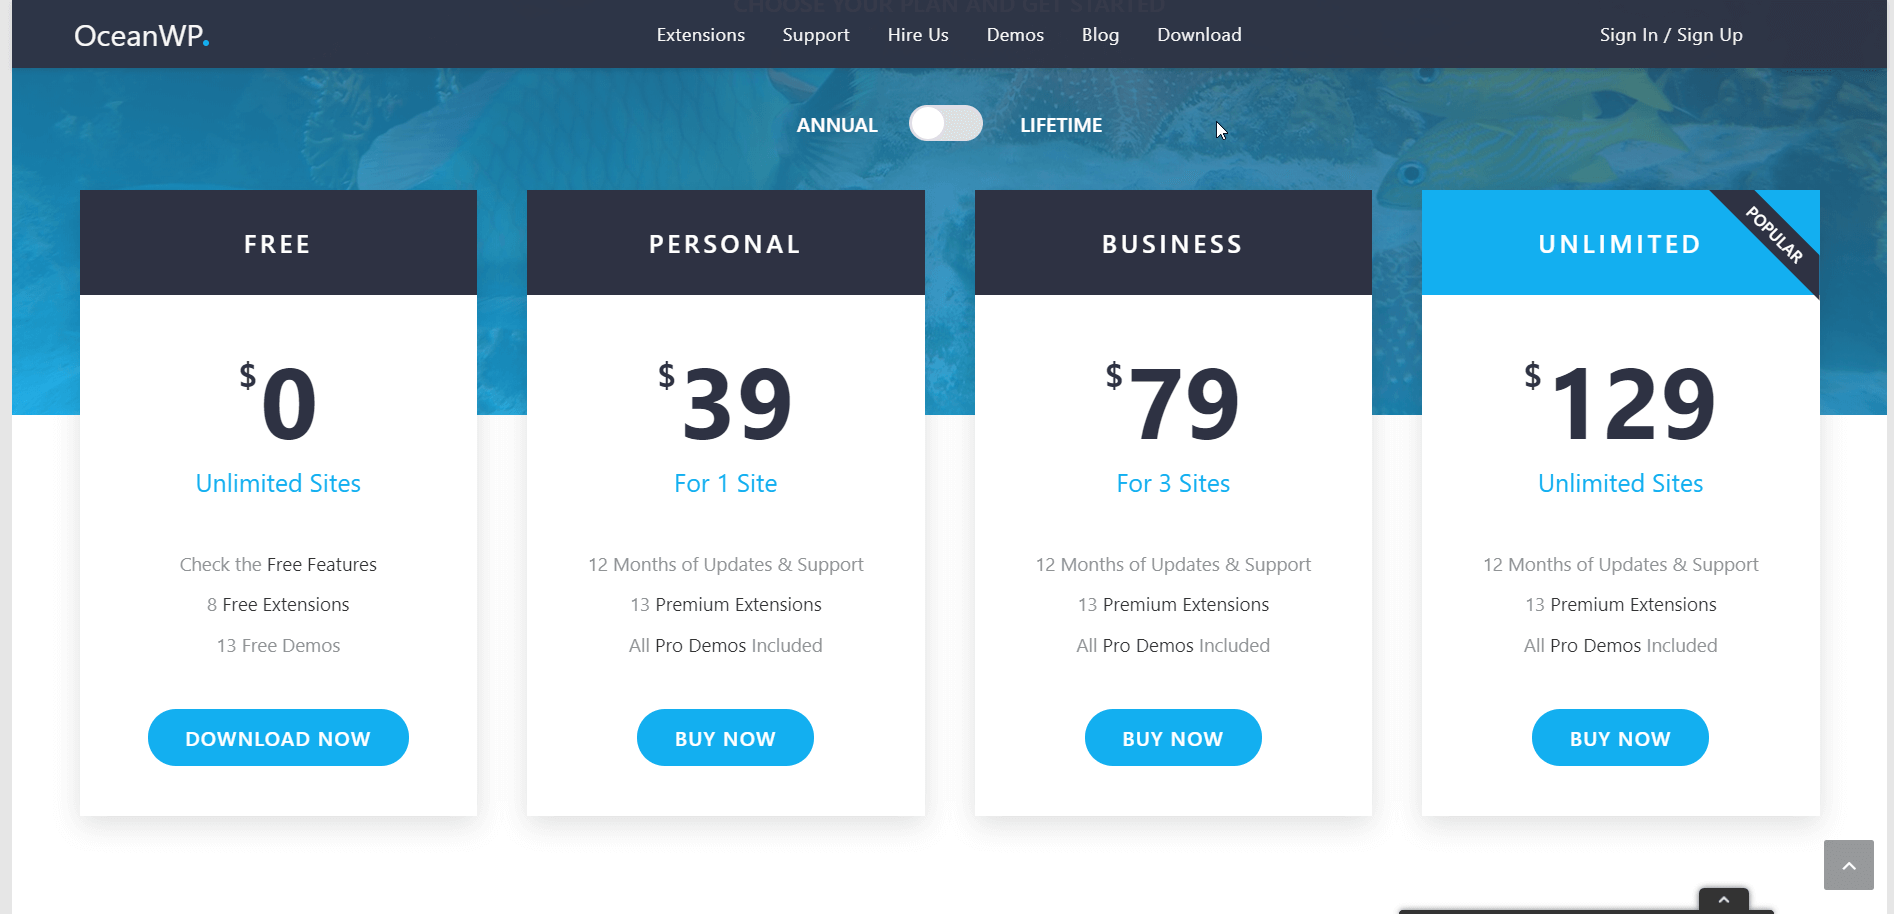 OceanWP WordPress Theme Review 50